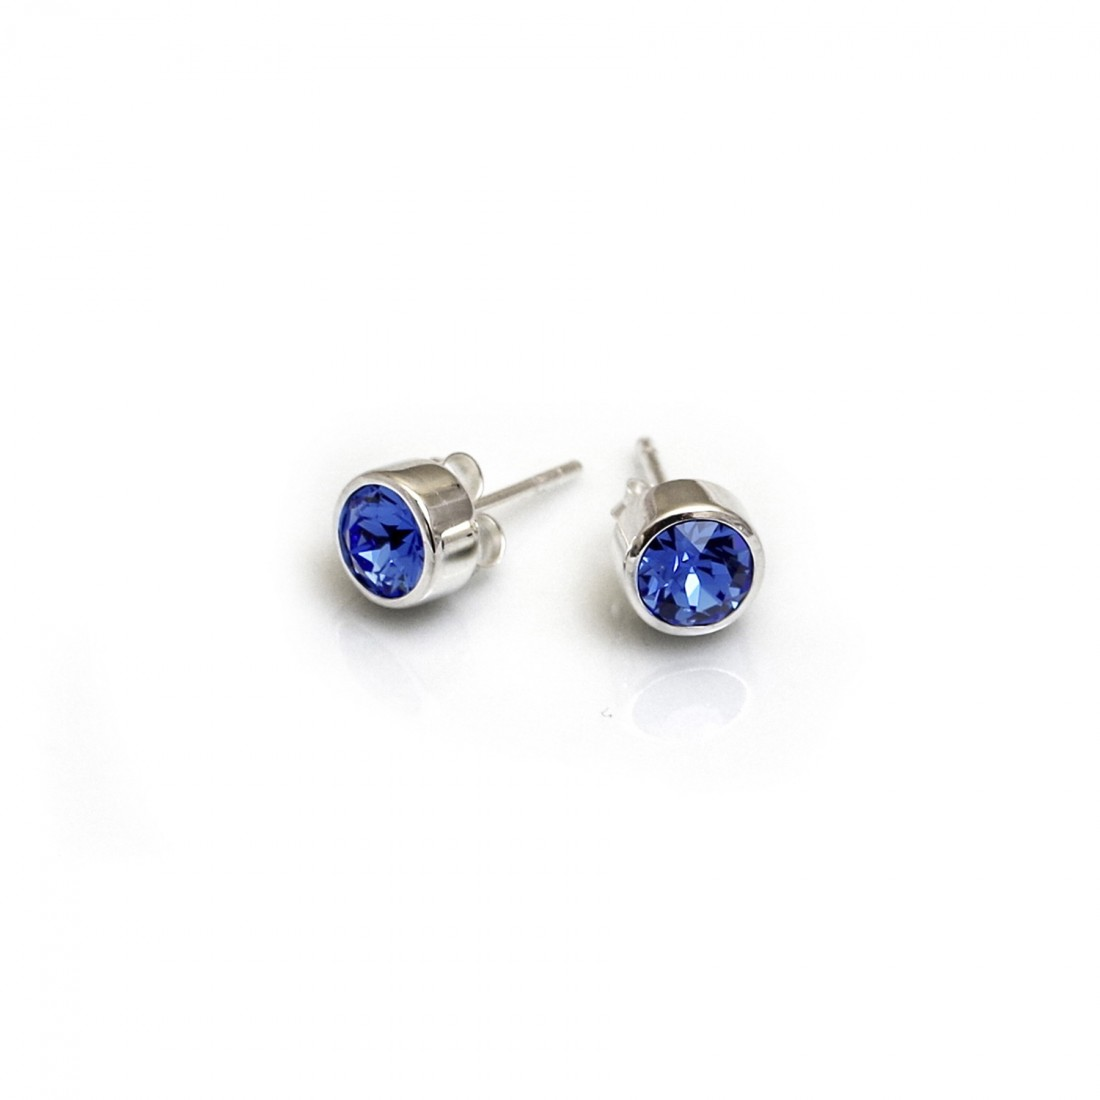 September Birthstone - Sapphire Blue CZ Stud Earrings